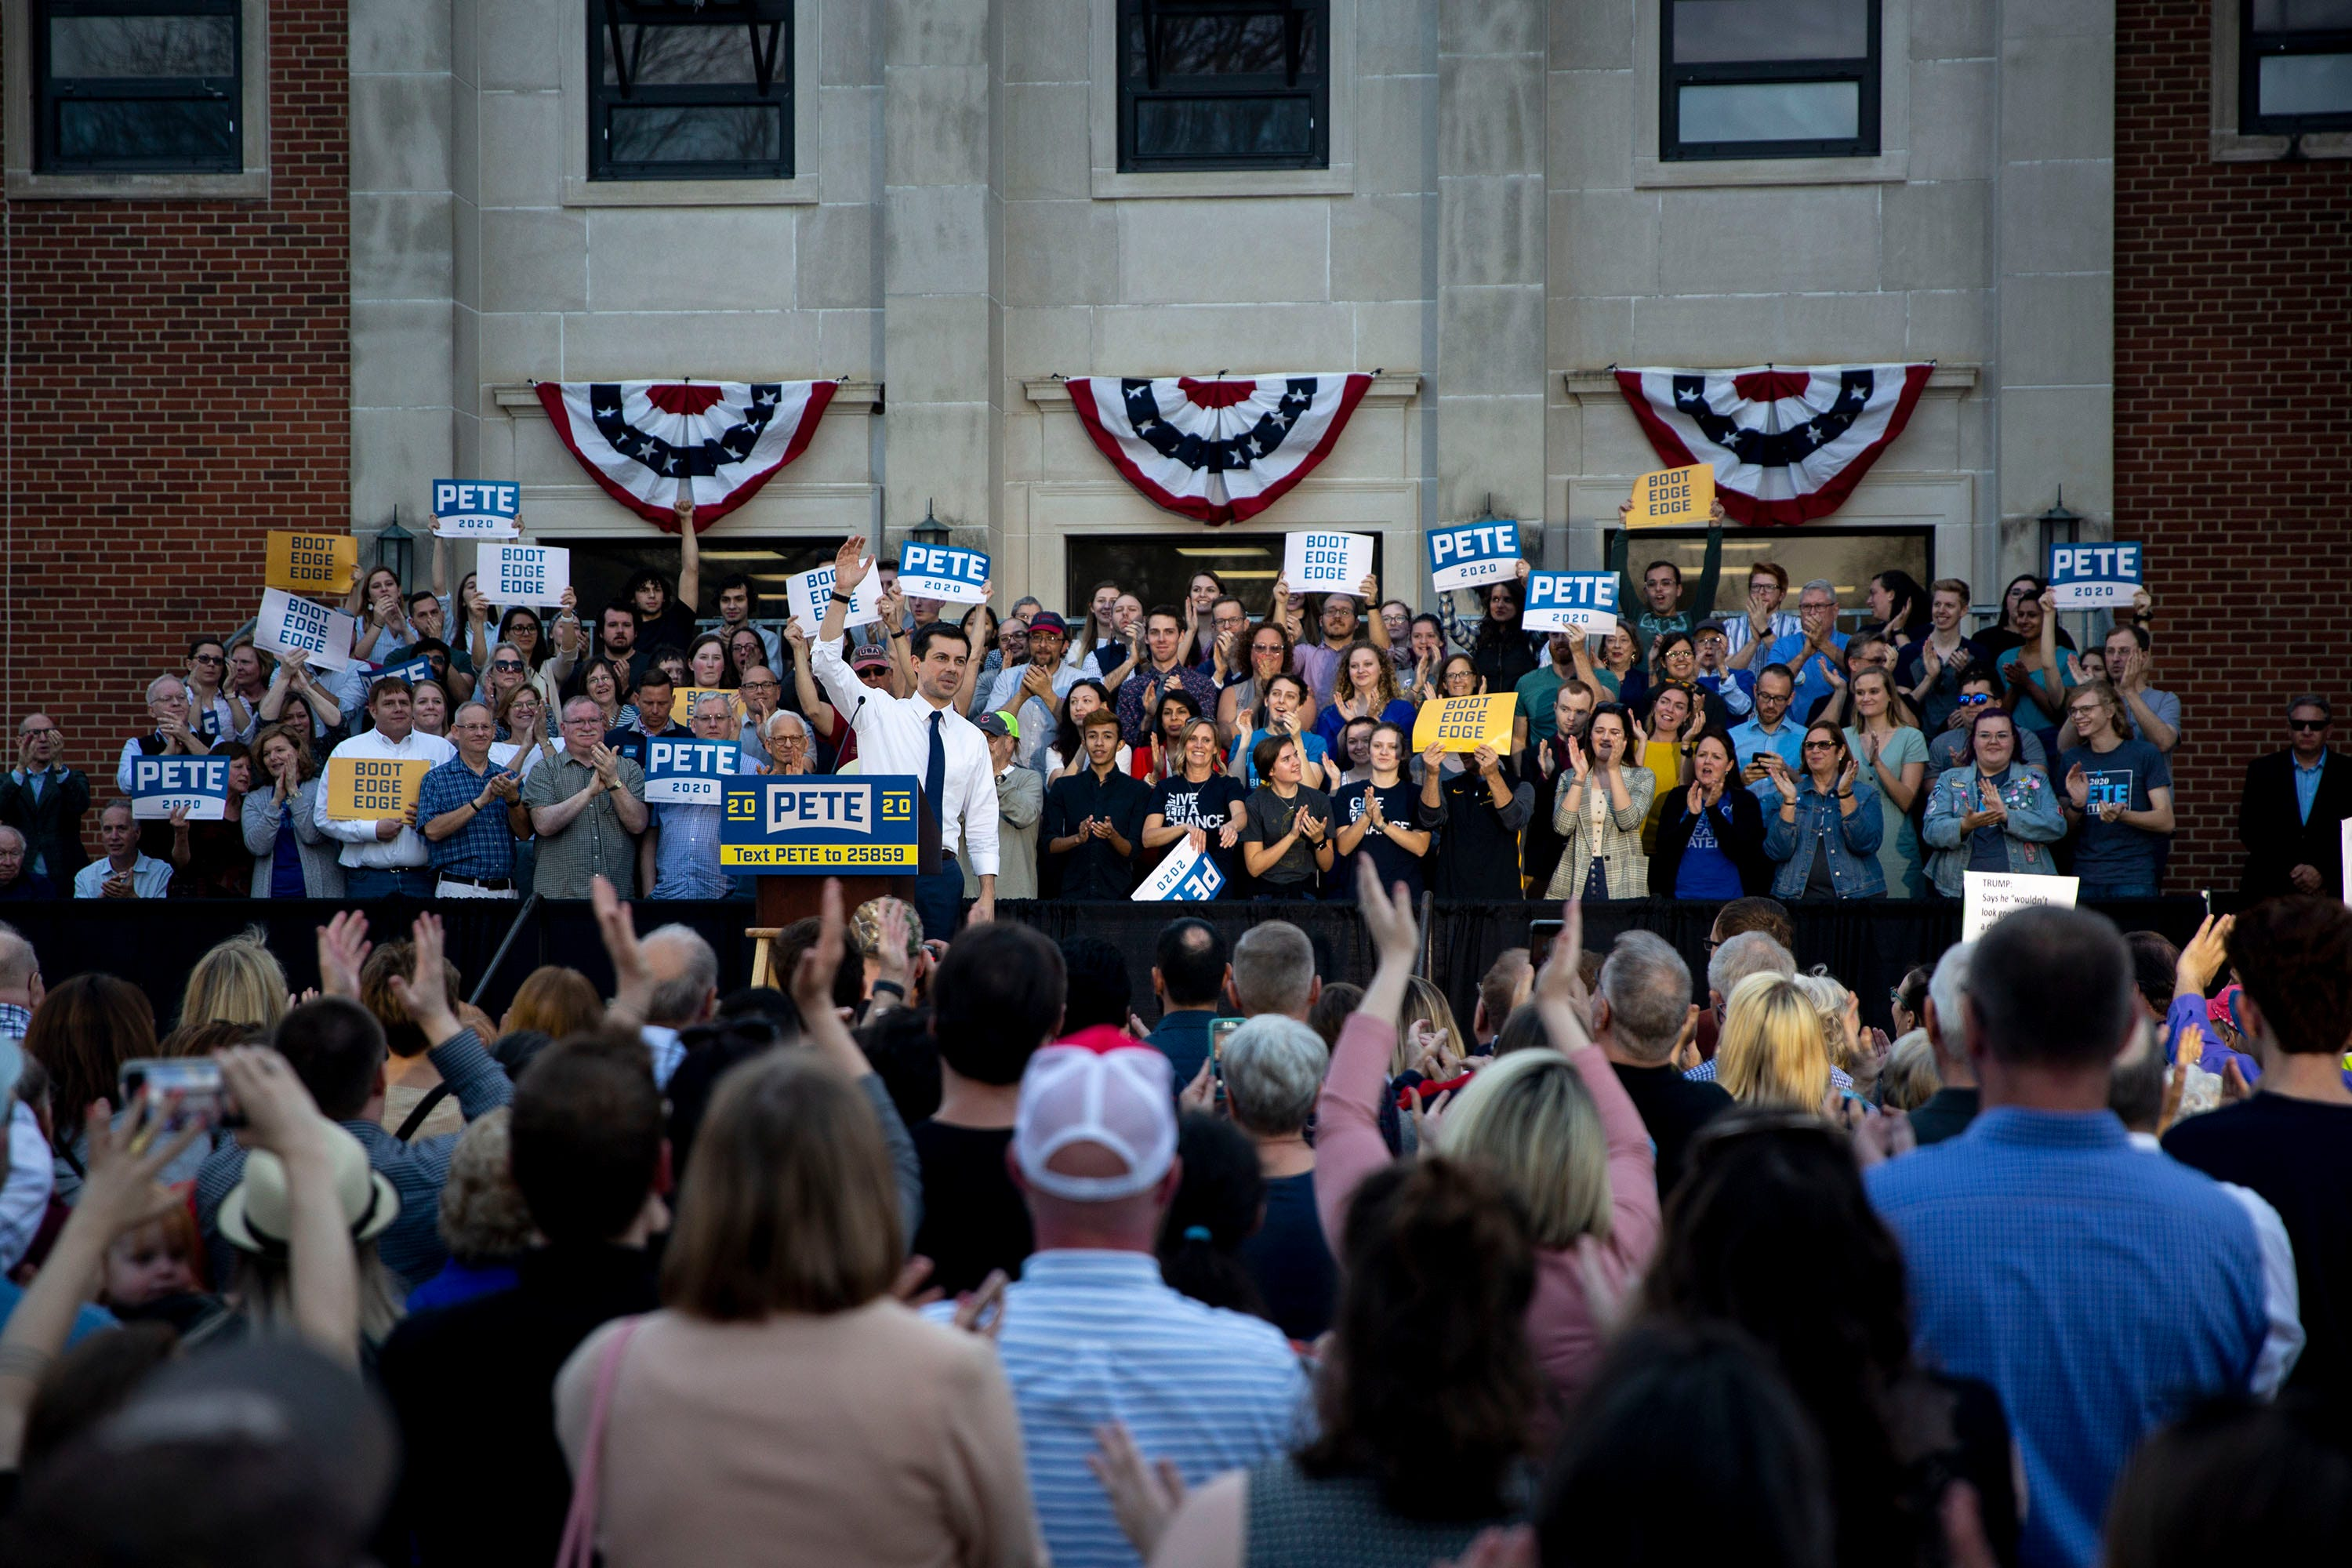 Pete Buttigieg: Before and after his rise in Iowa